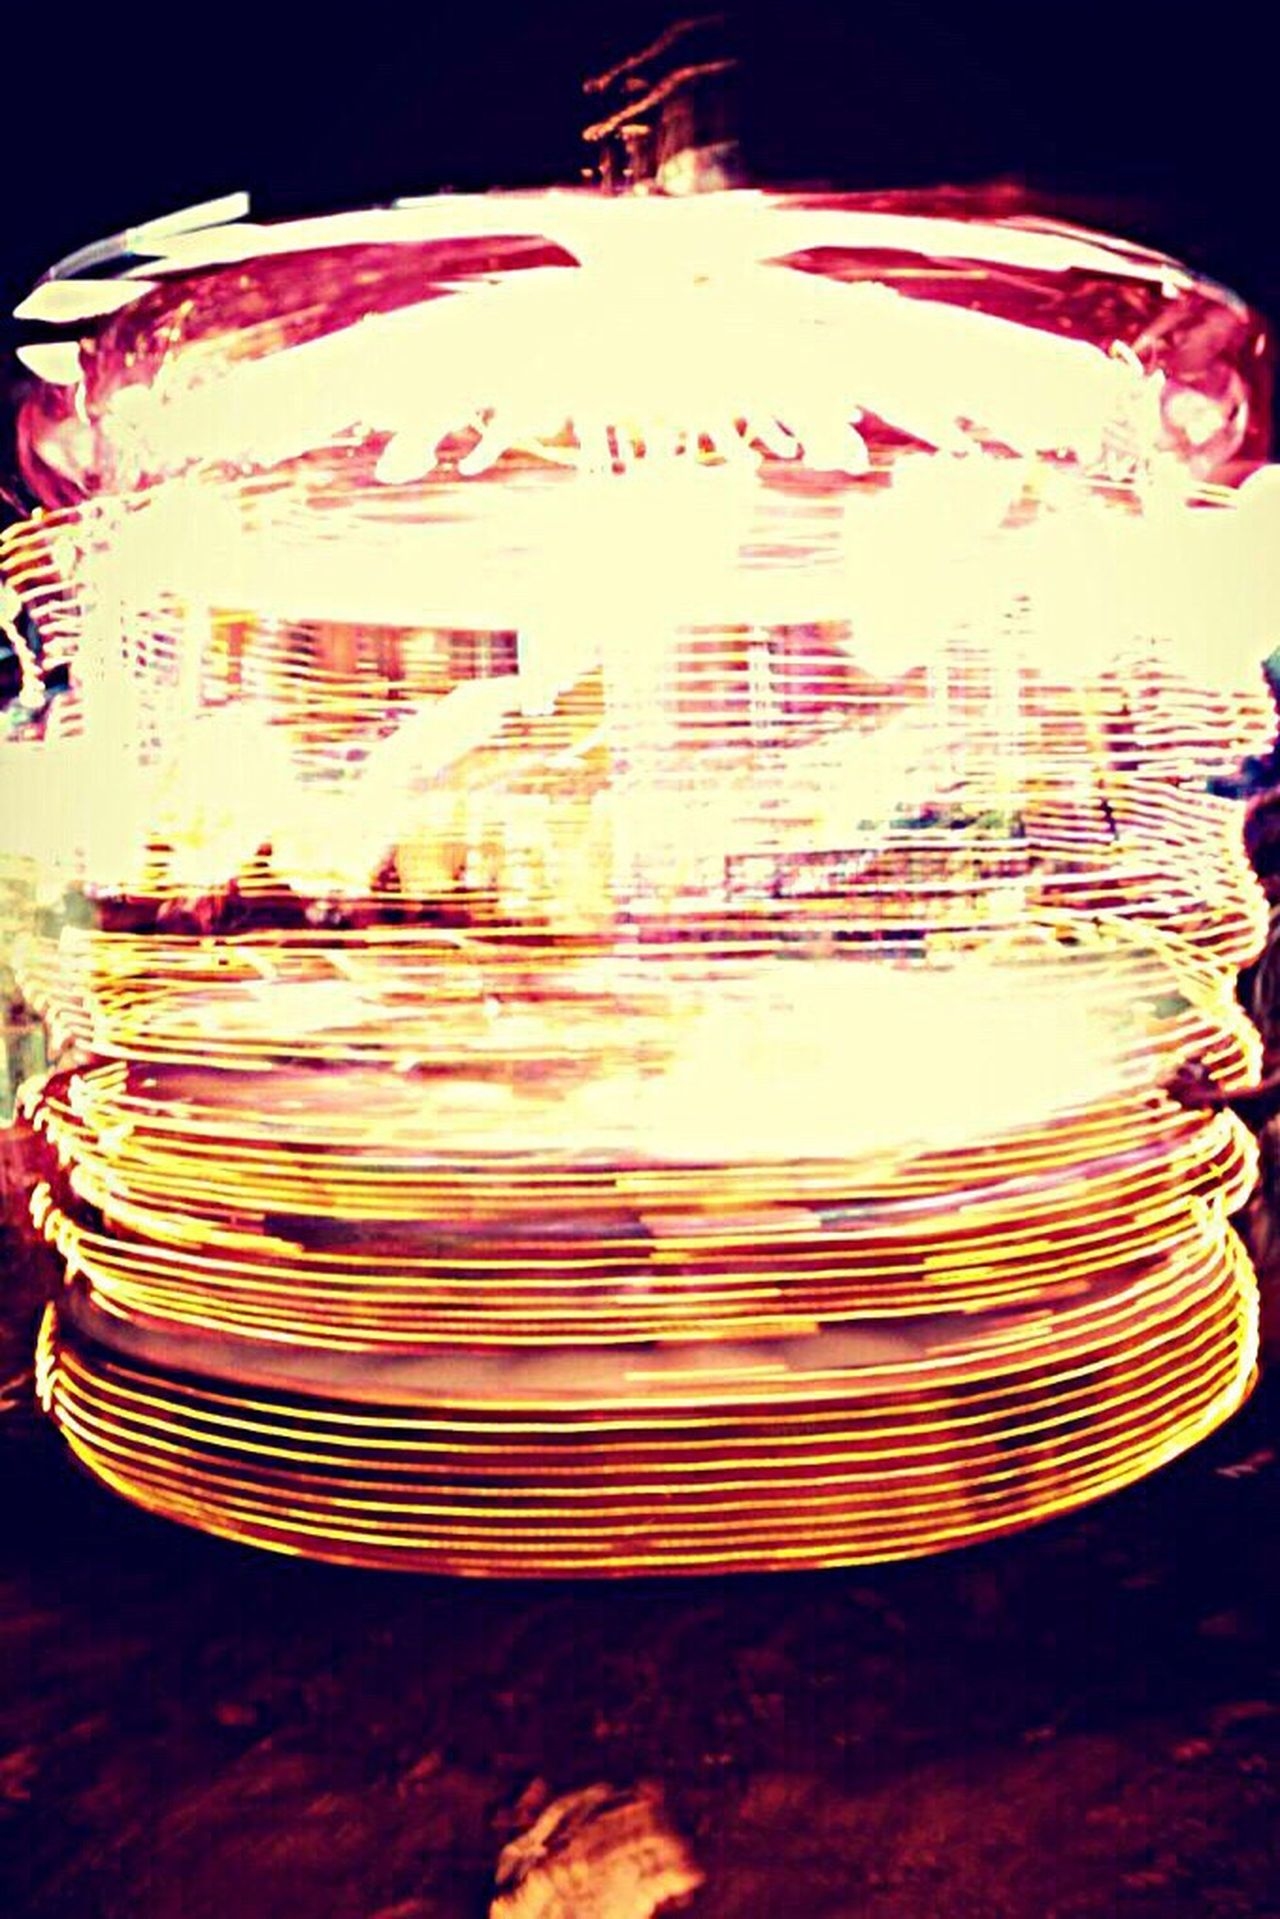 Fair Illuminated Circle EyeEm No People Eyeemphotography Phonephotography Eyeem Photography India Eyeemcollection EyeEmBestPics Light Effect Nightlife Arts Culture And Entertainment Motion Long Exposure Blurred Motion Multi Colored Entertainment Fun Night Black Background